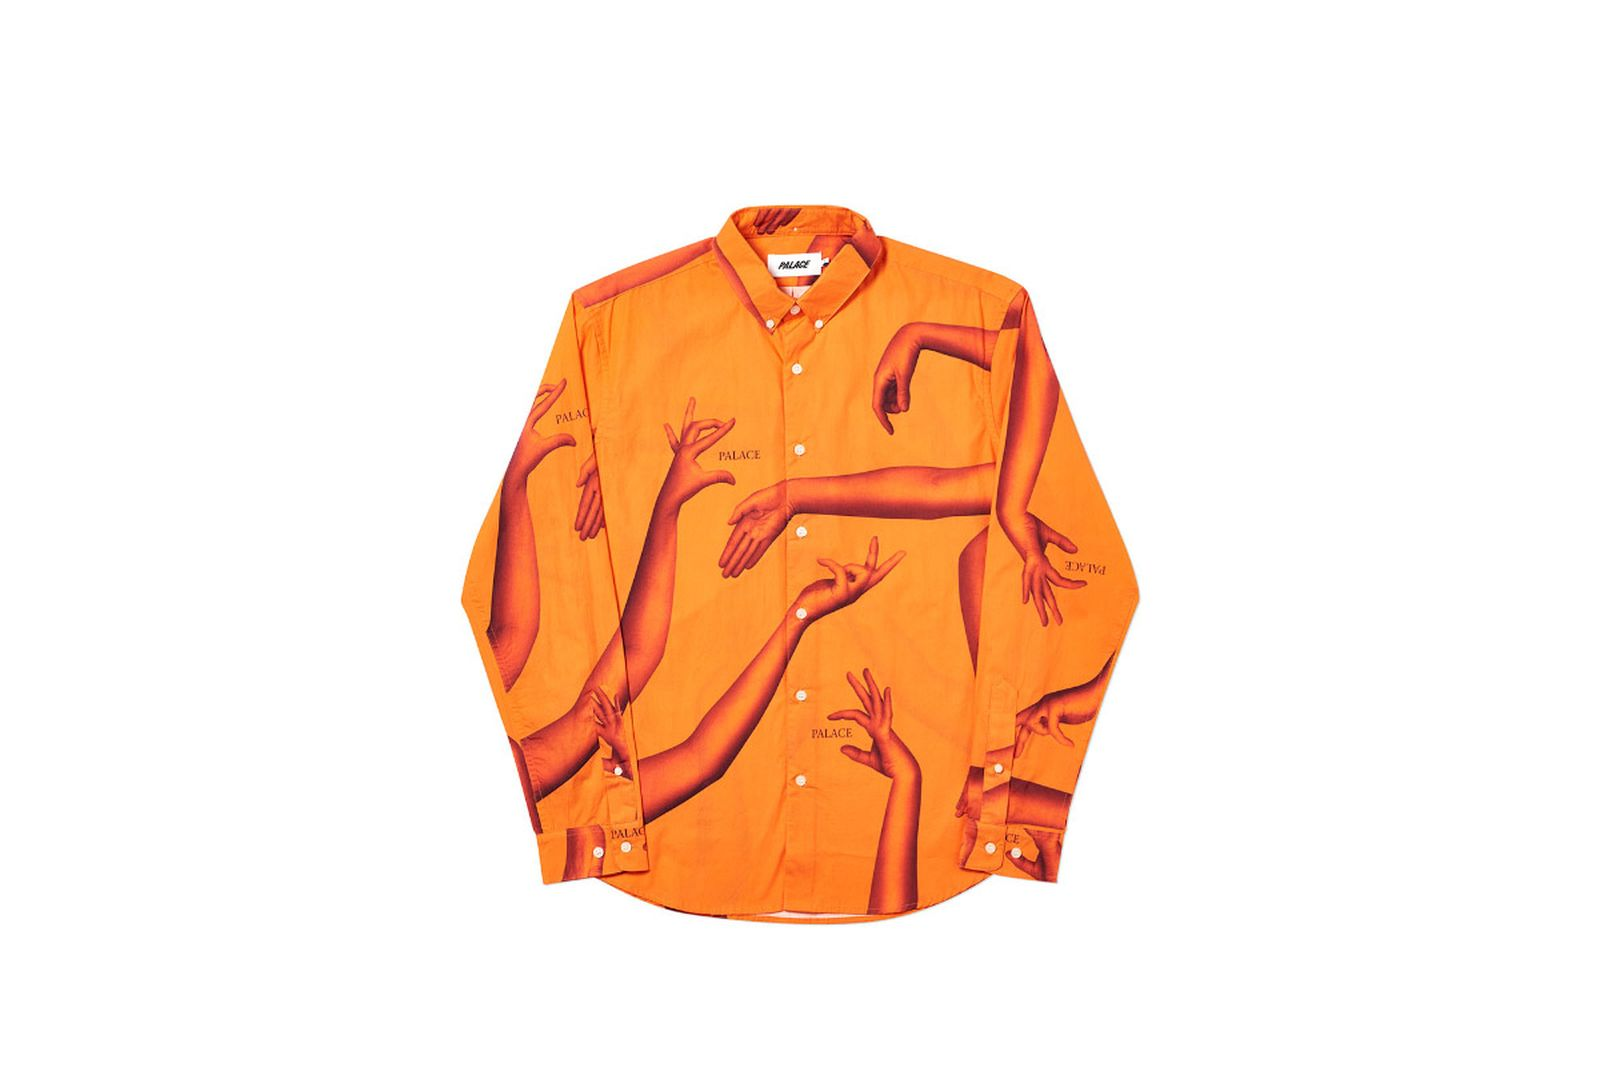 Palace 2019 Autumn Shirt Armbus orange front fw19